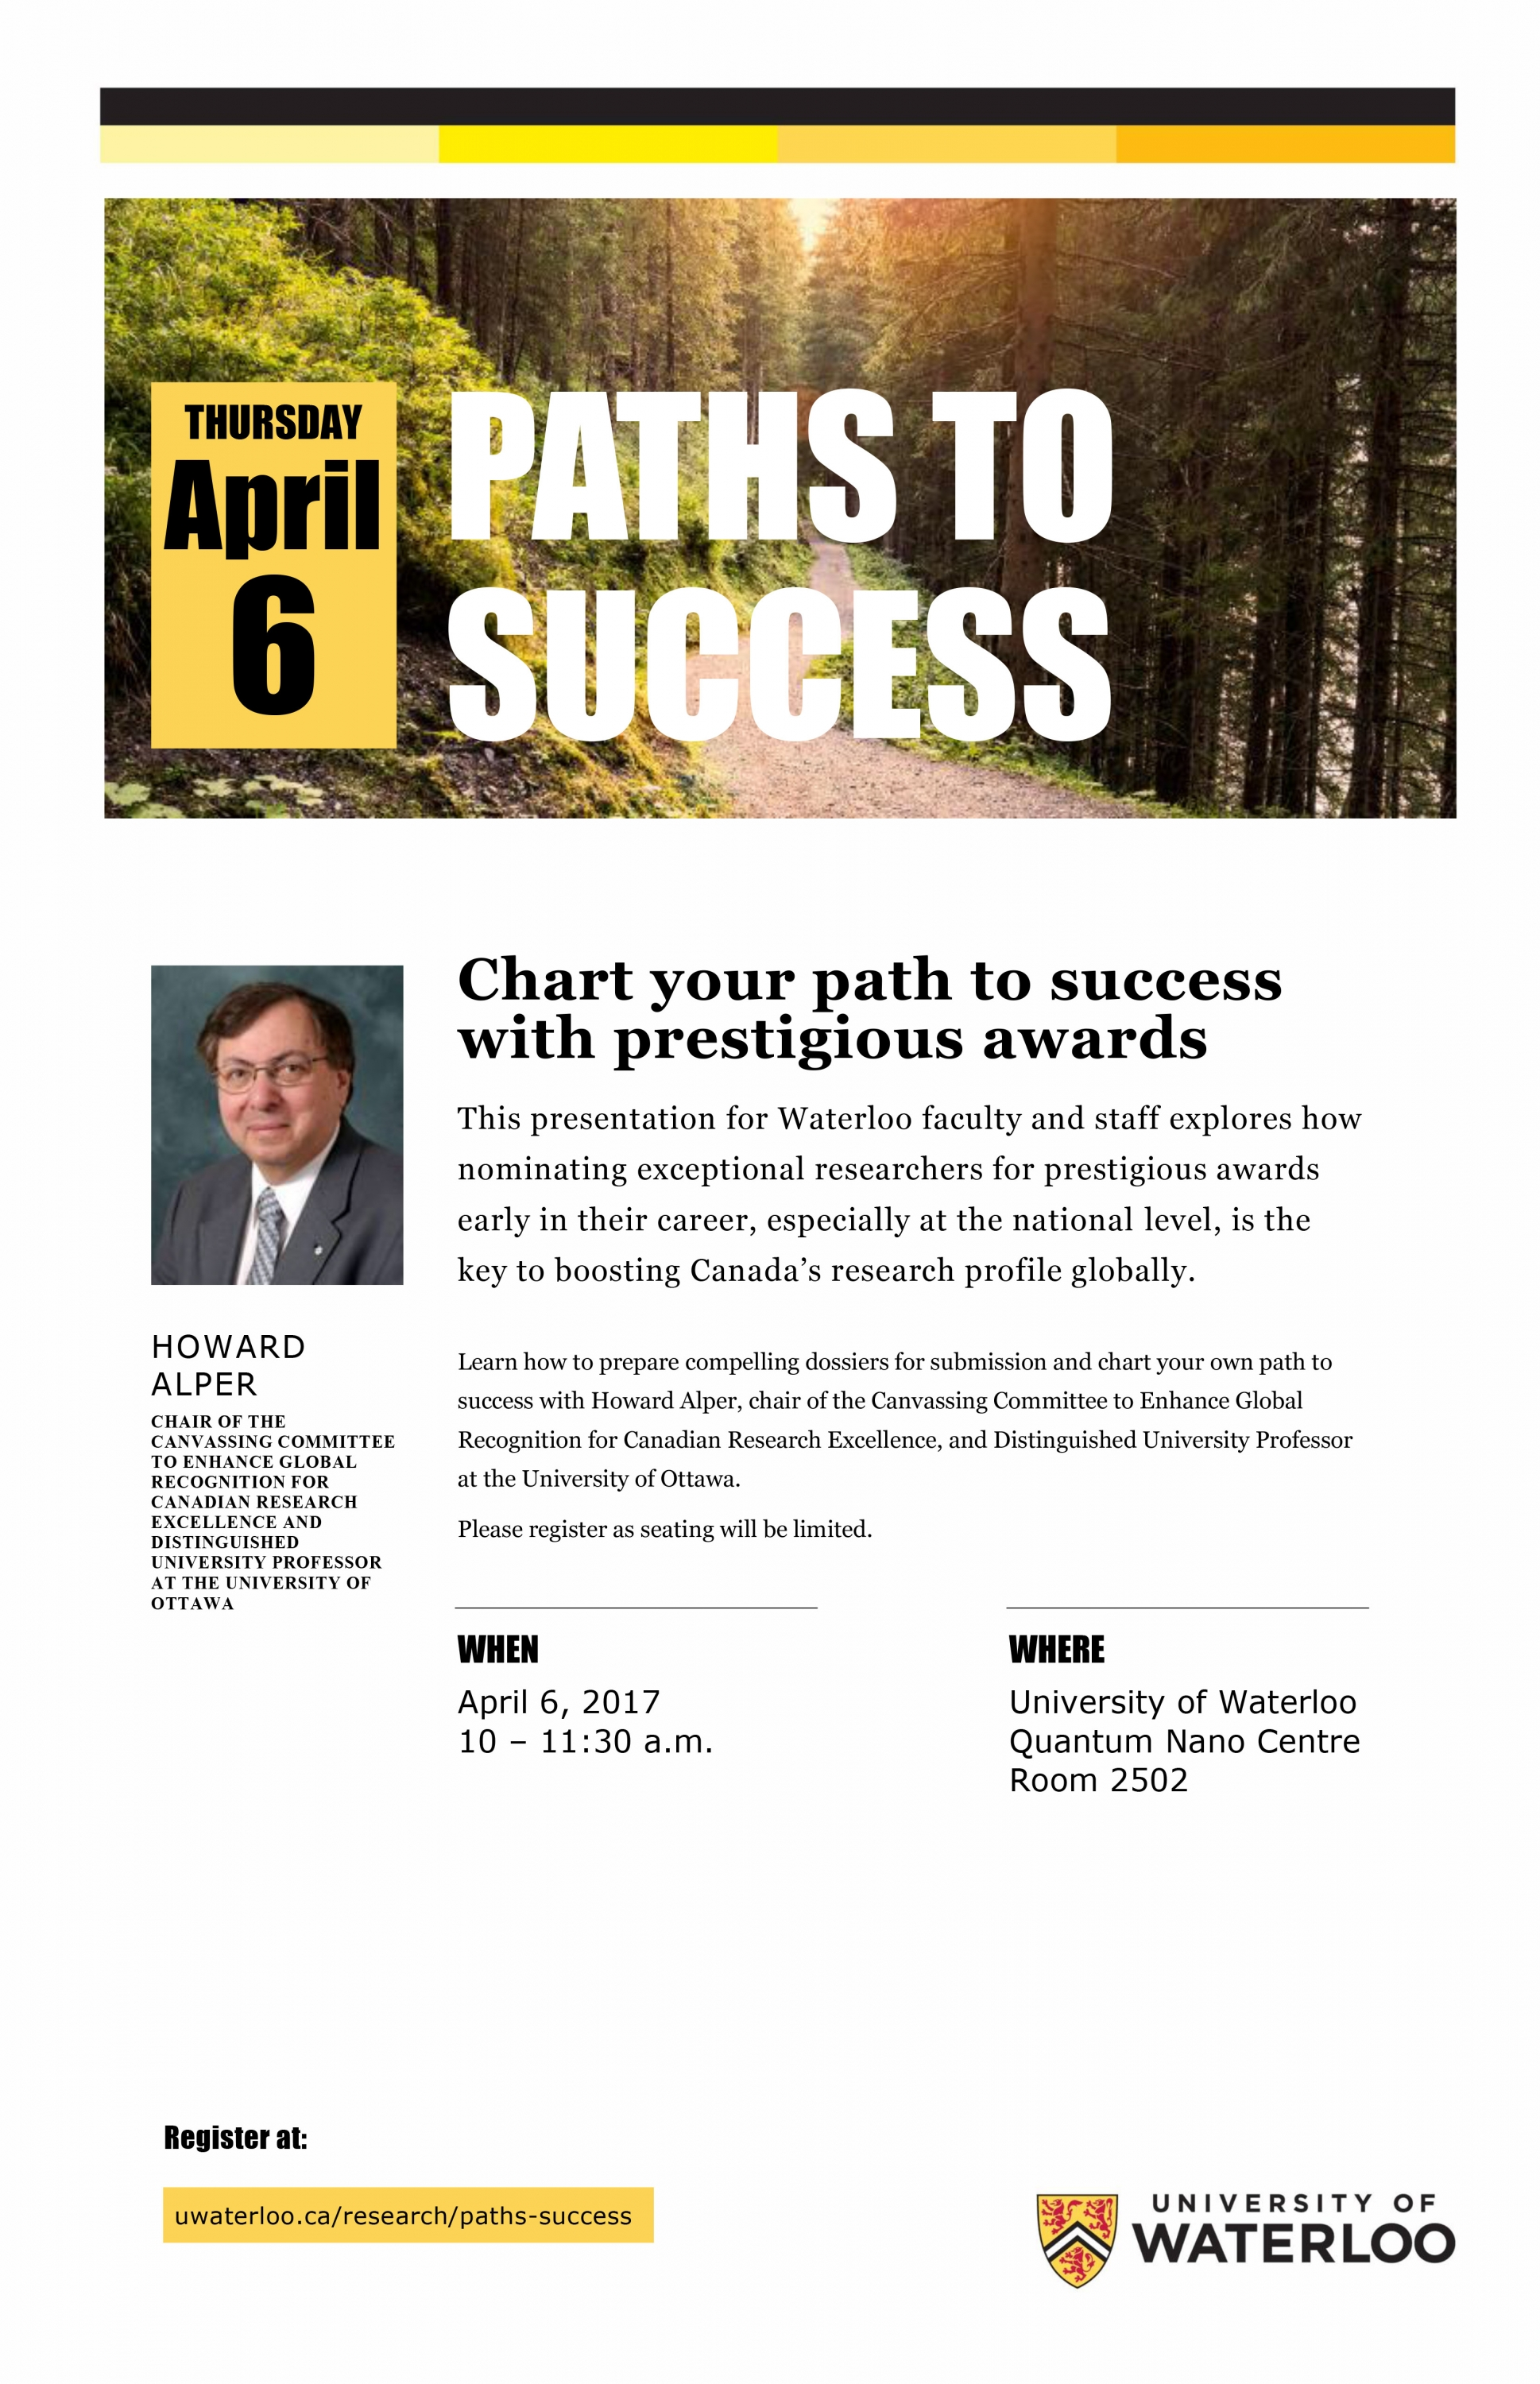 Chart your path to success poster